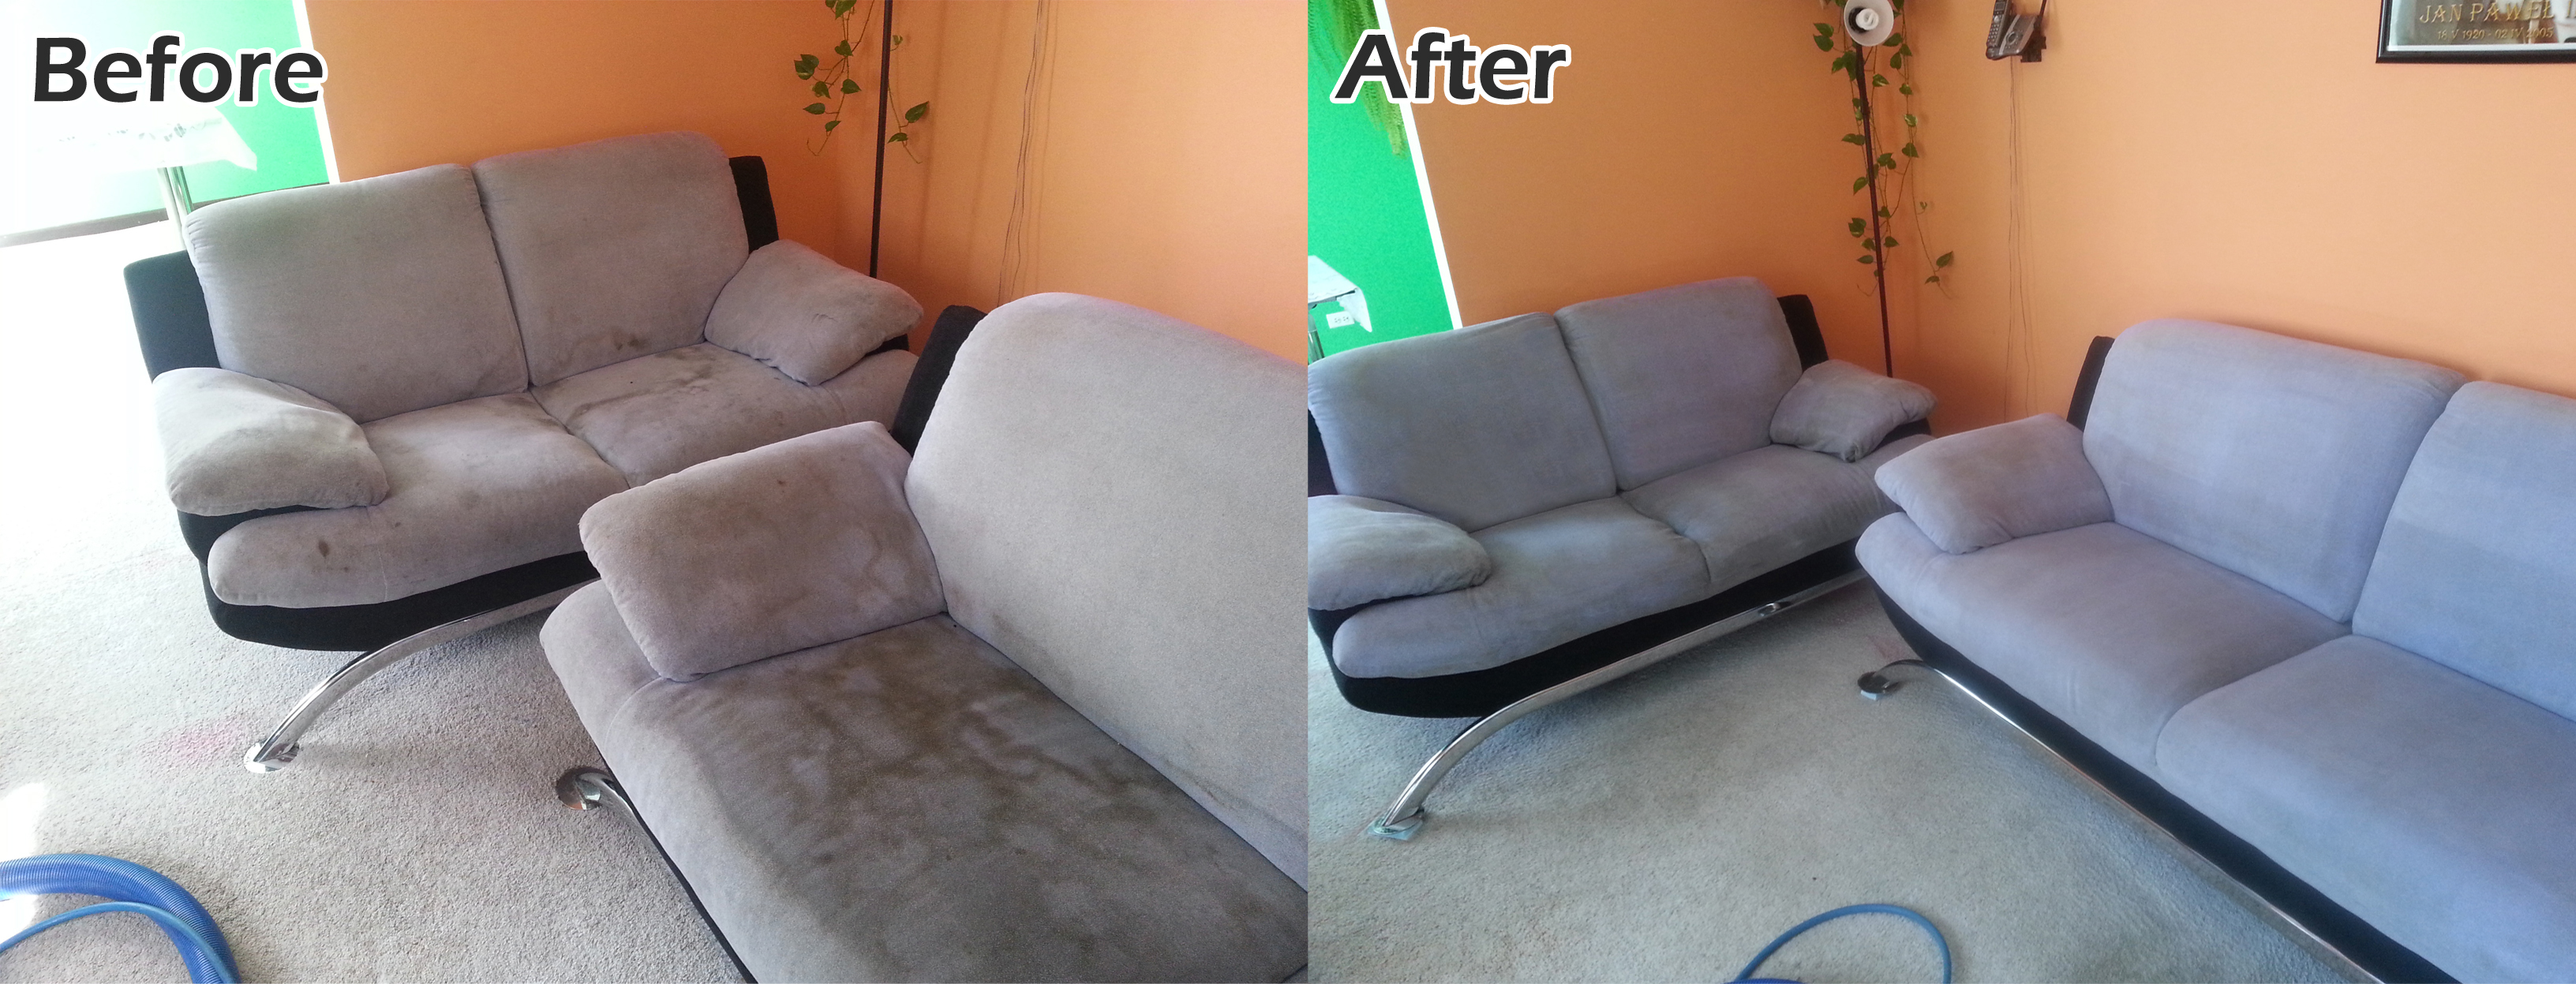 Couch Cleaned Monash University 3800